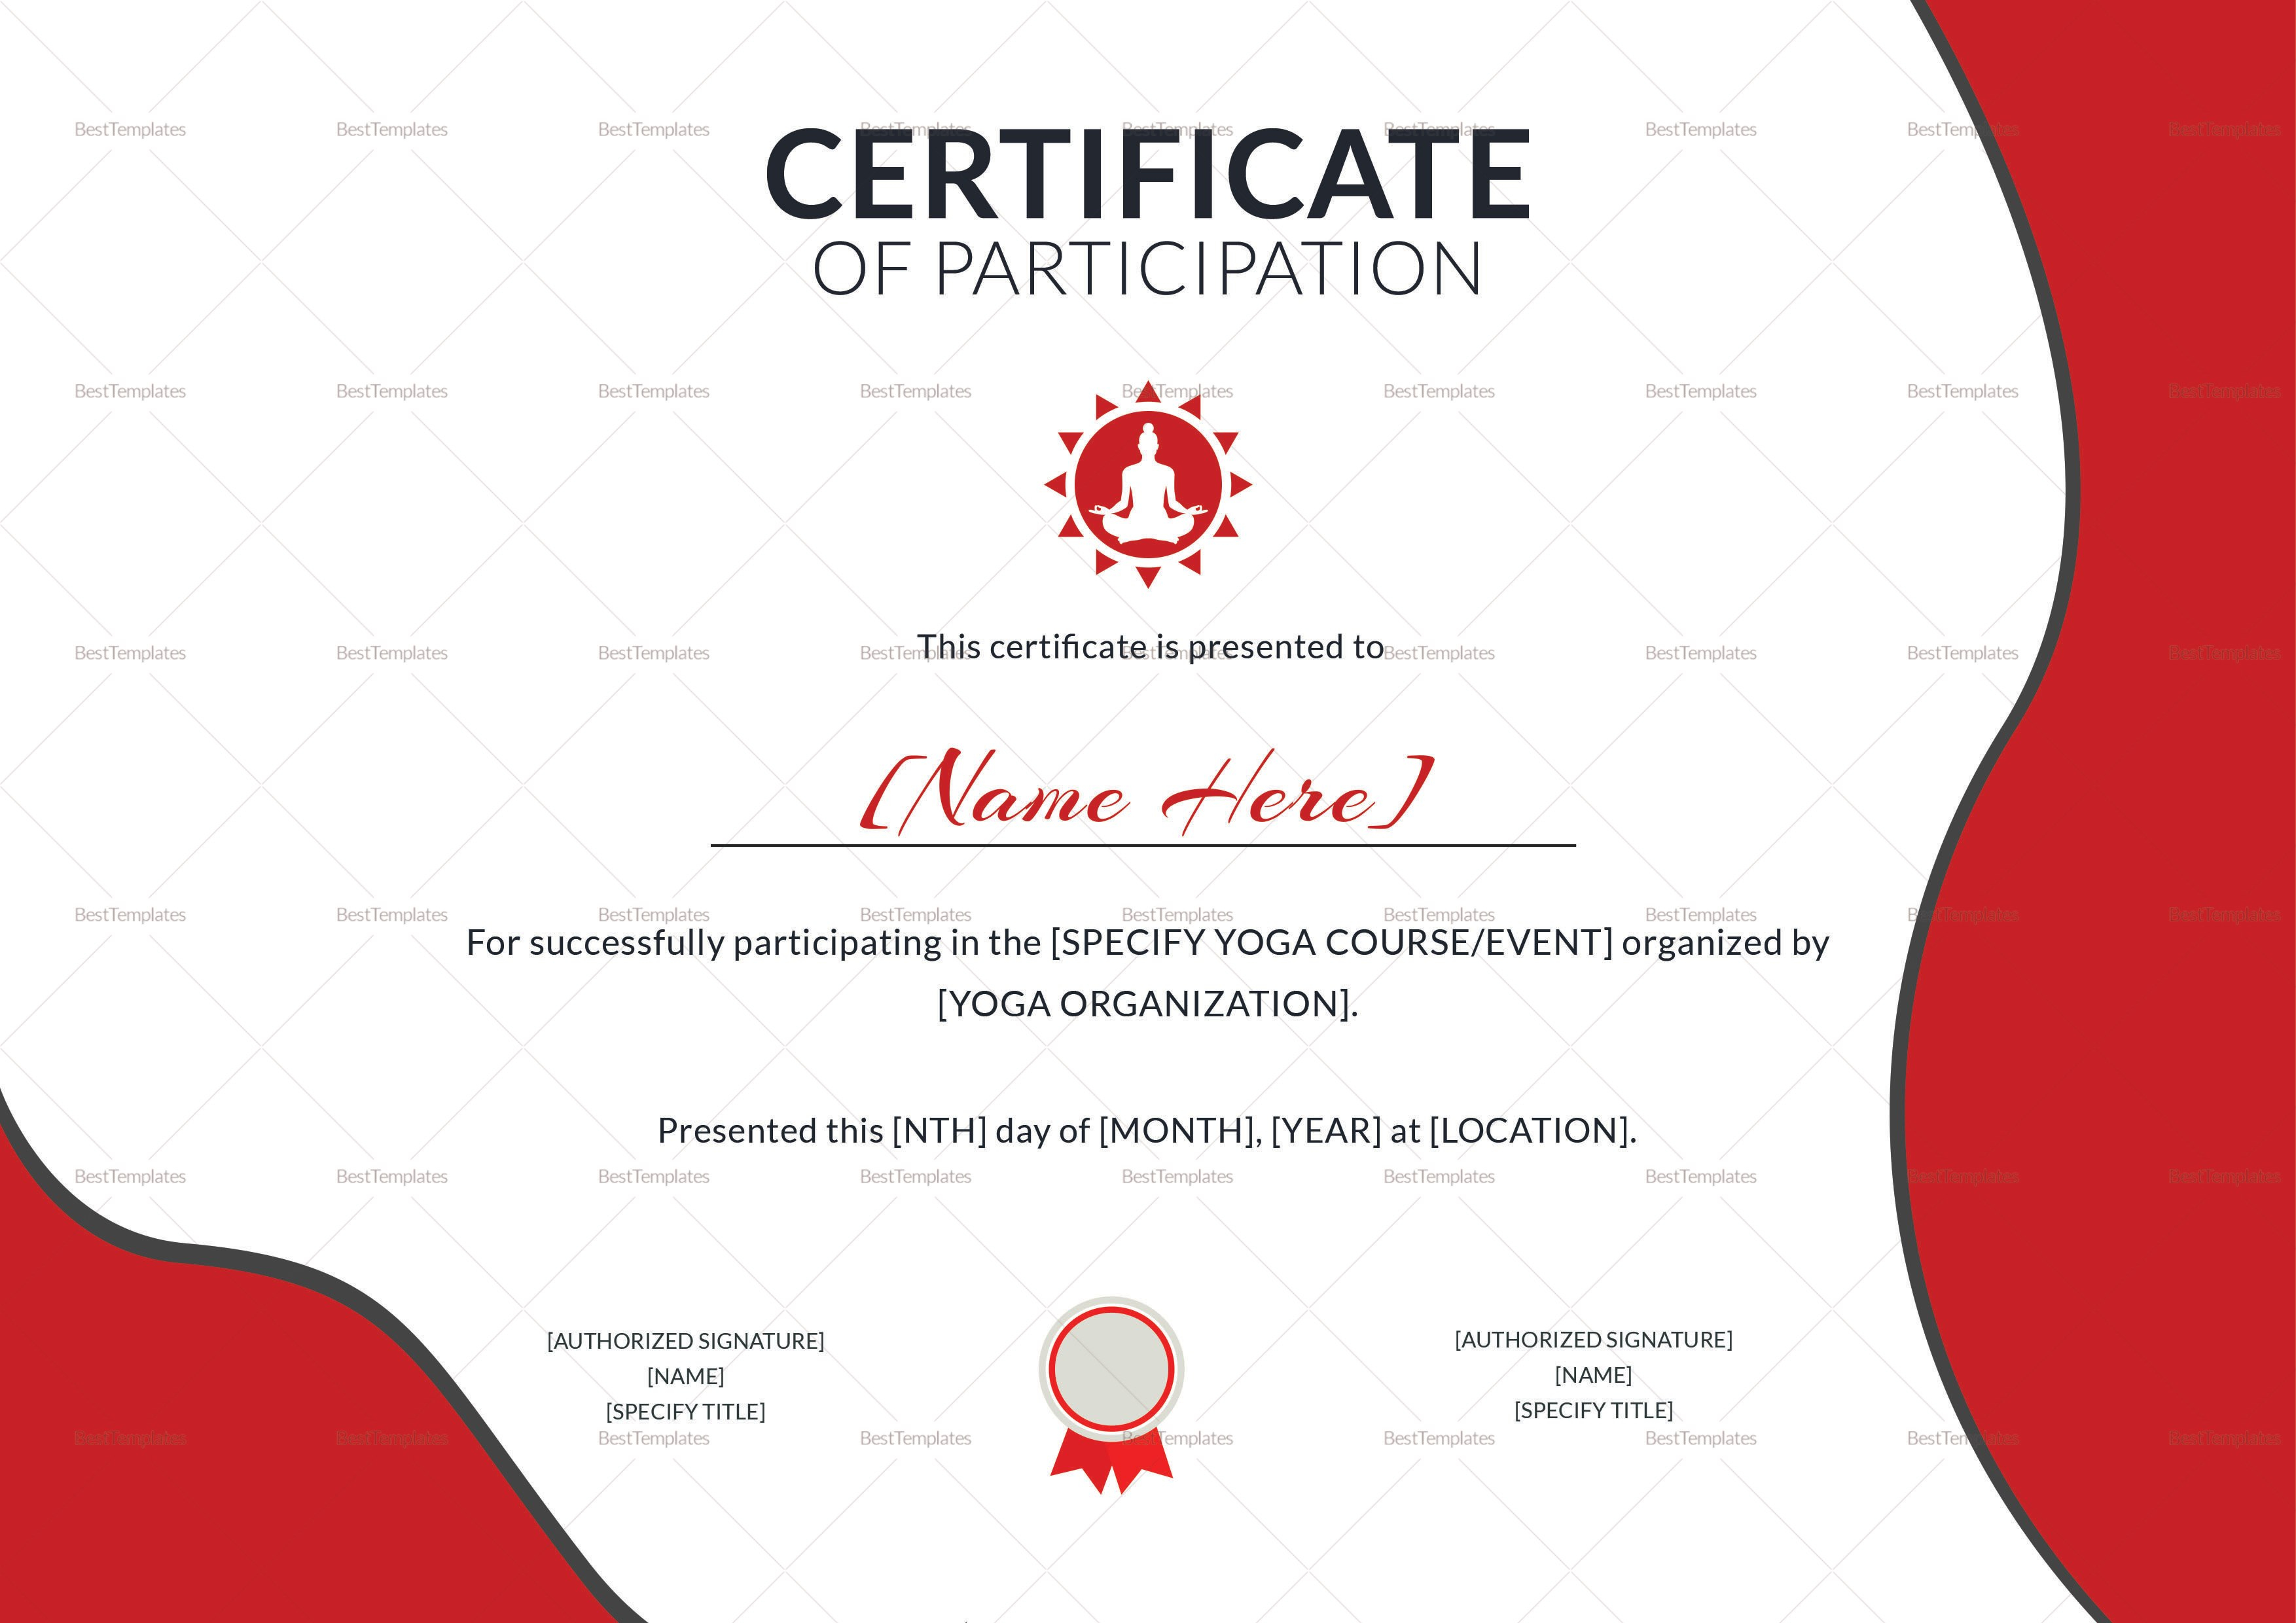 Yoga Participation Certificate Design Template In Psd Word With Templates For Certificates Of Participation